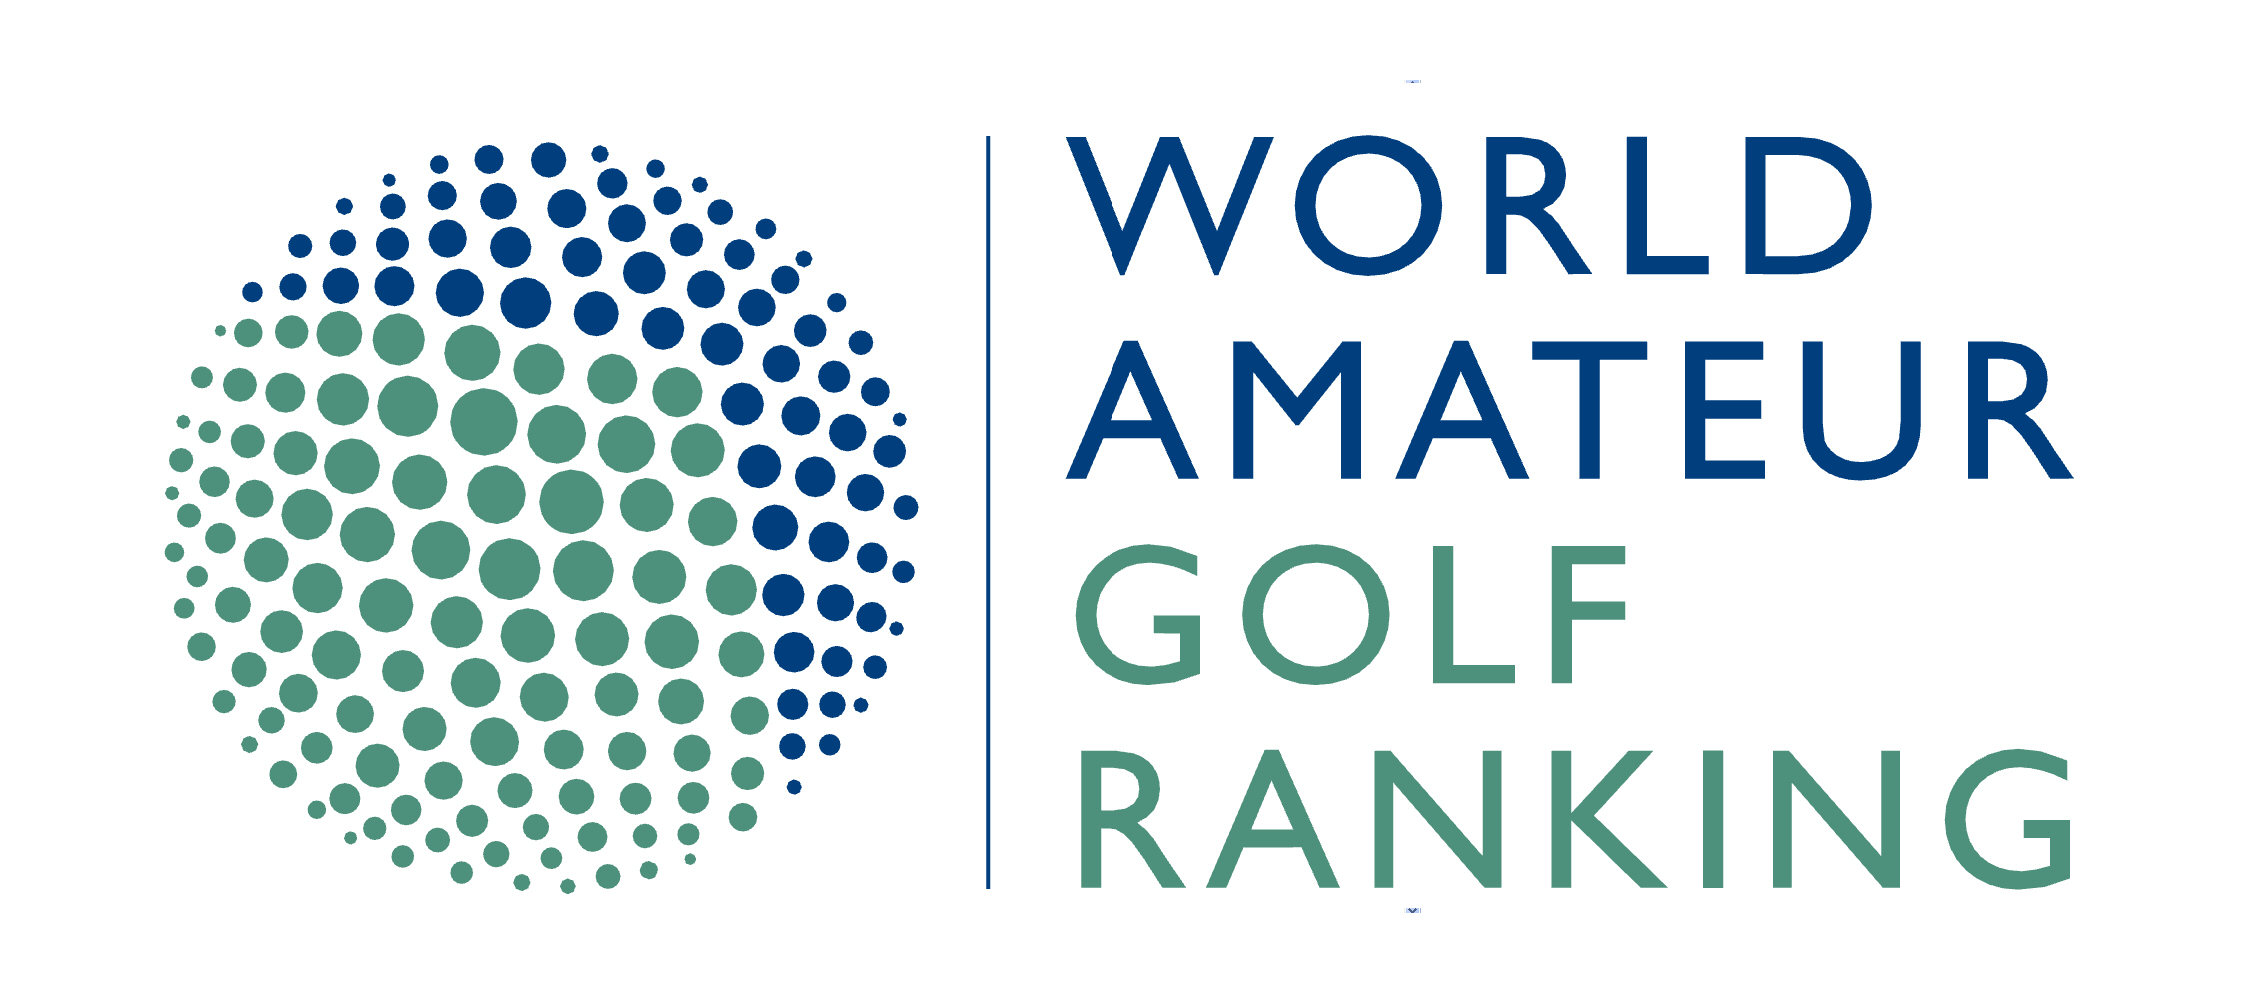 Remarkable, very World amateur golf rankings was